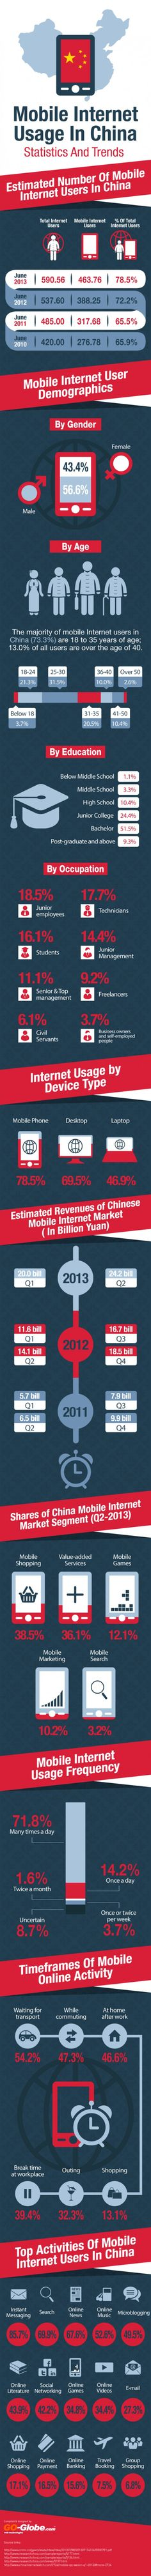 Mobile Internet Usage In China � Statistics And Trends